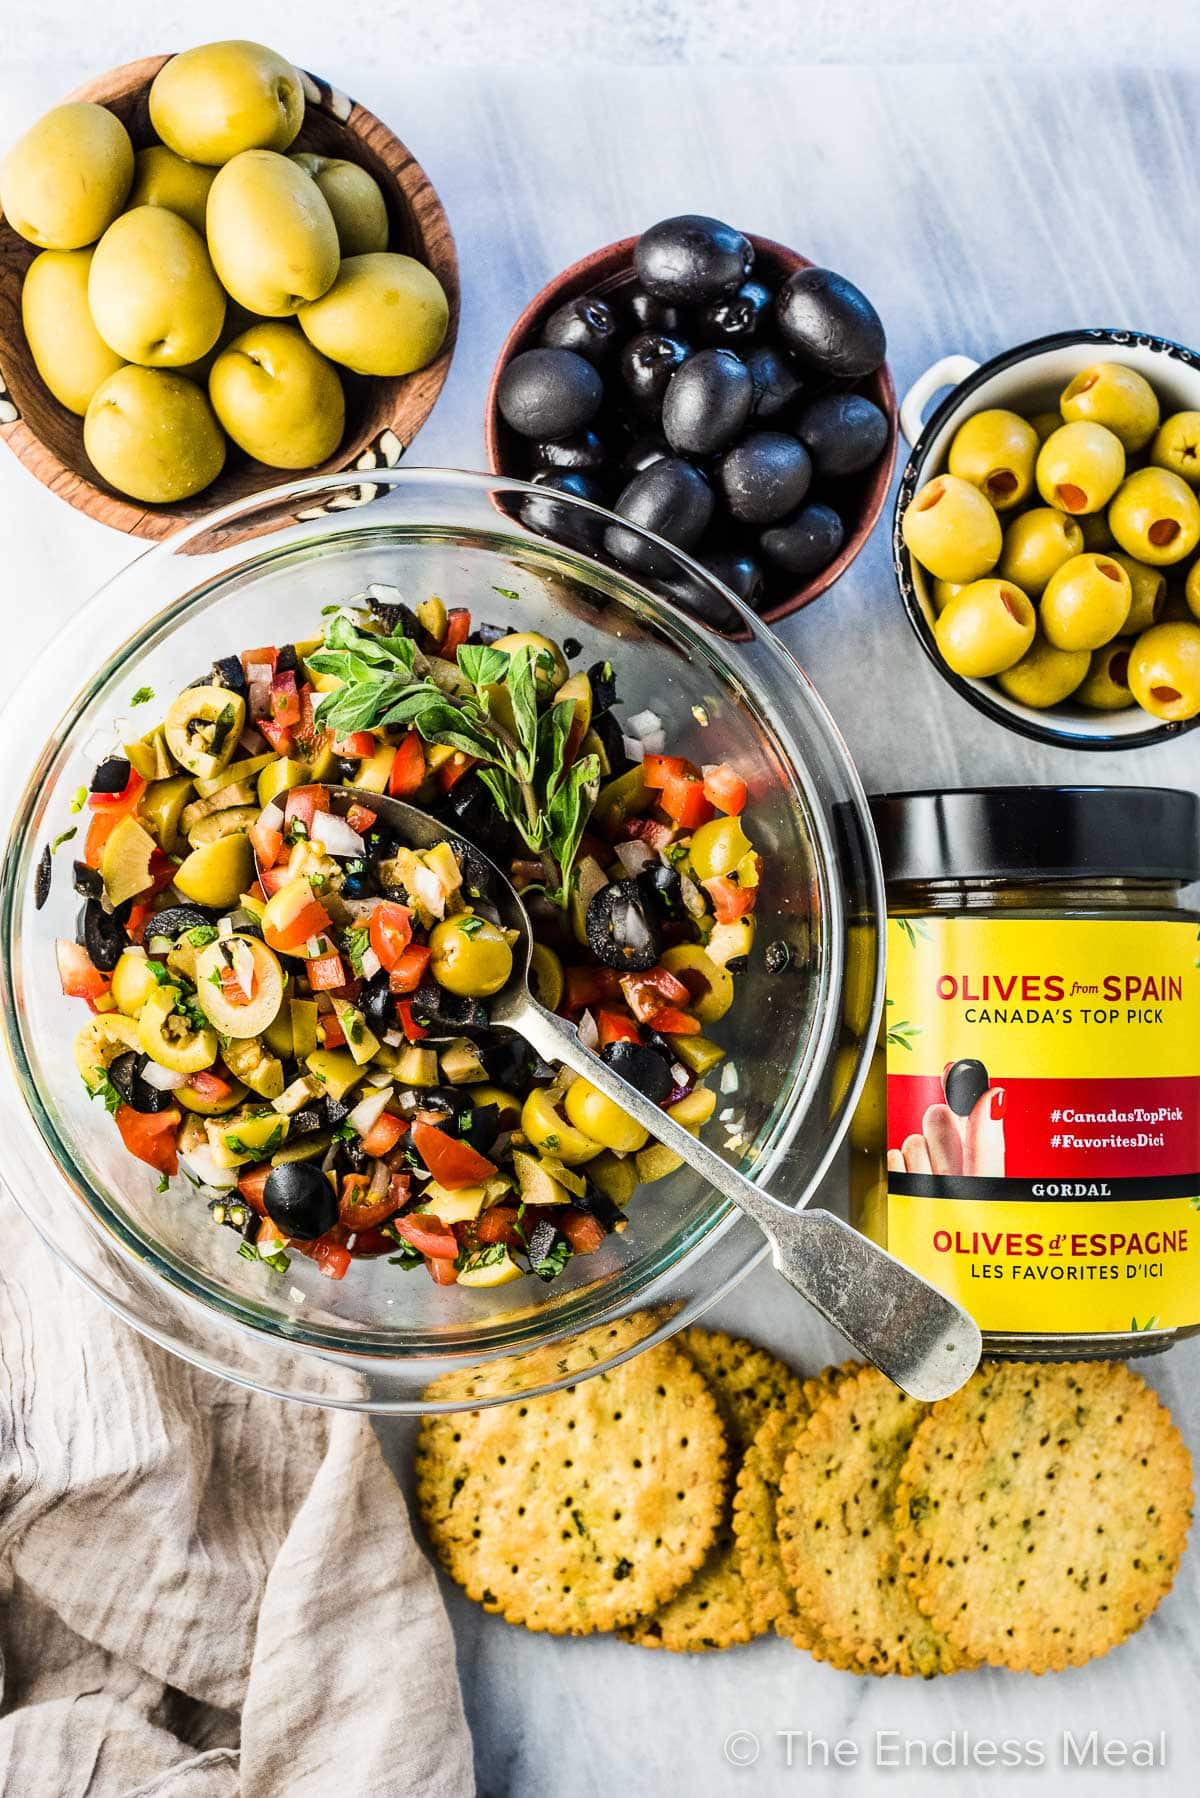 A glass bowl filled with olive salsa and bowls of olives surrounding it.